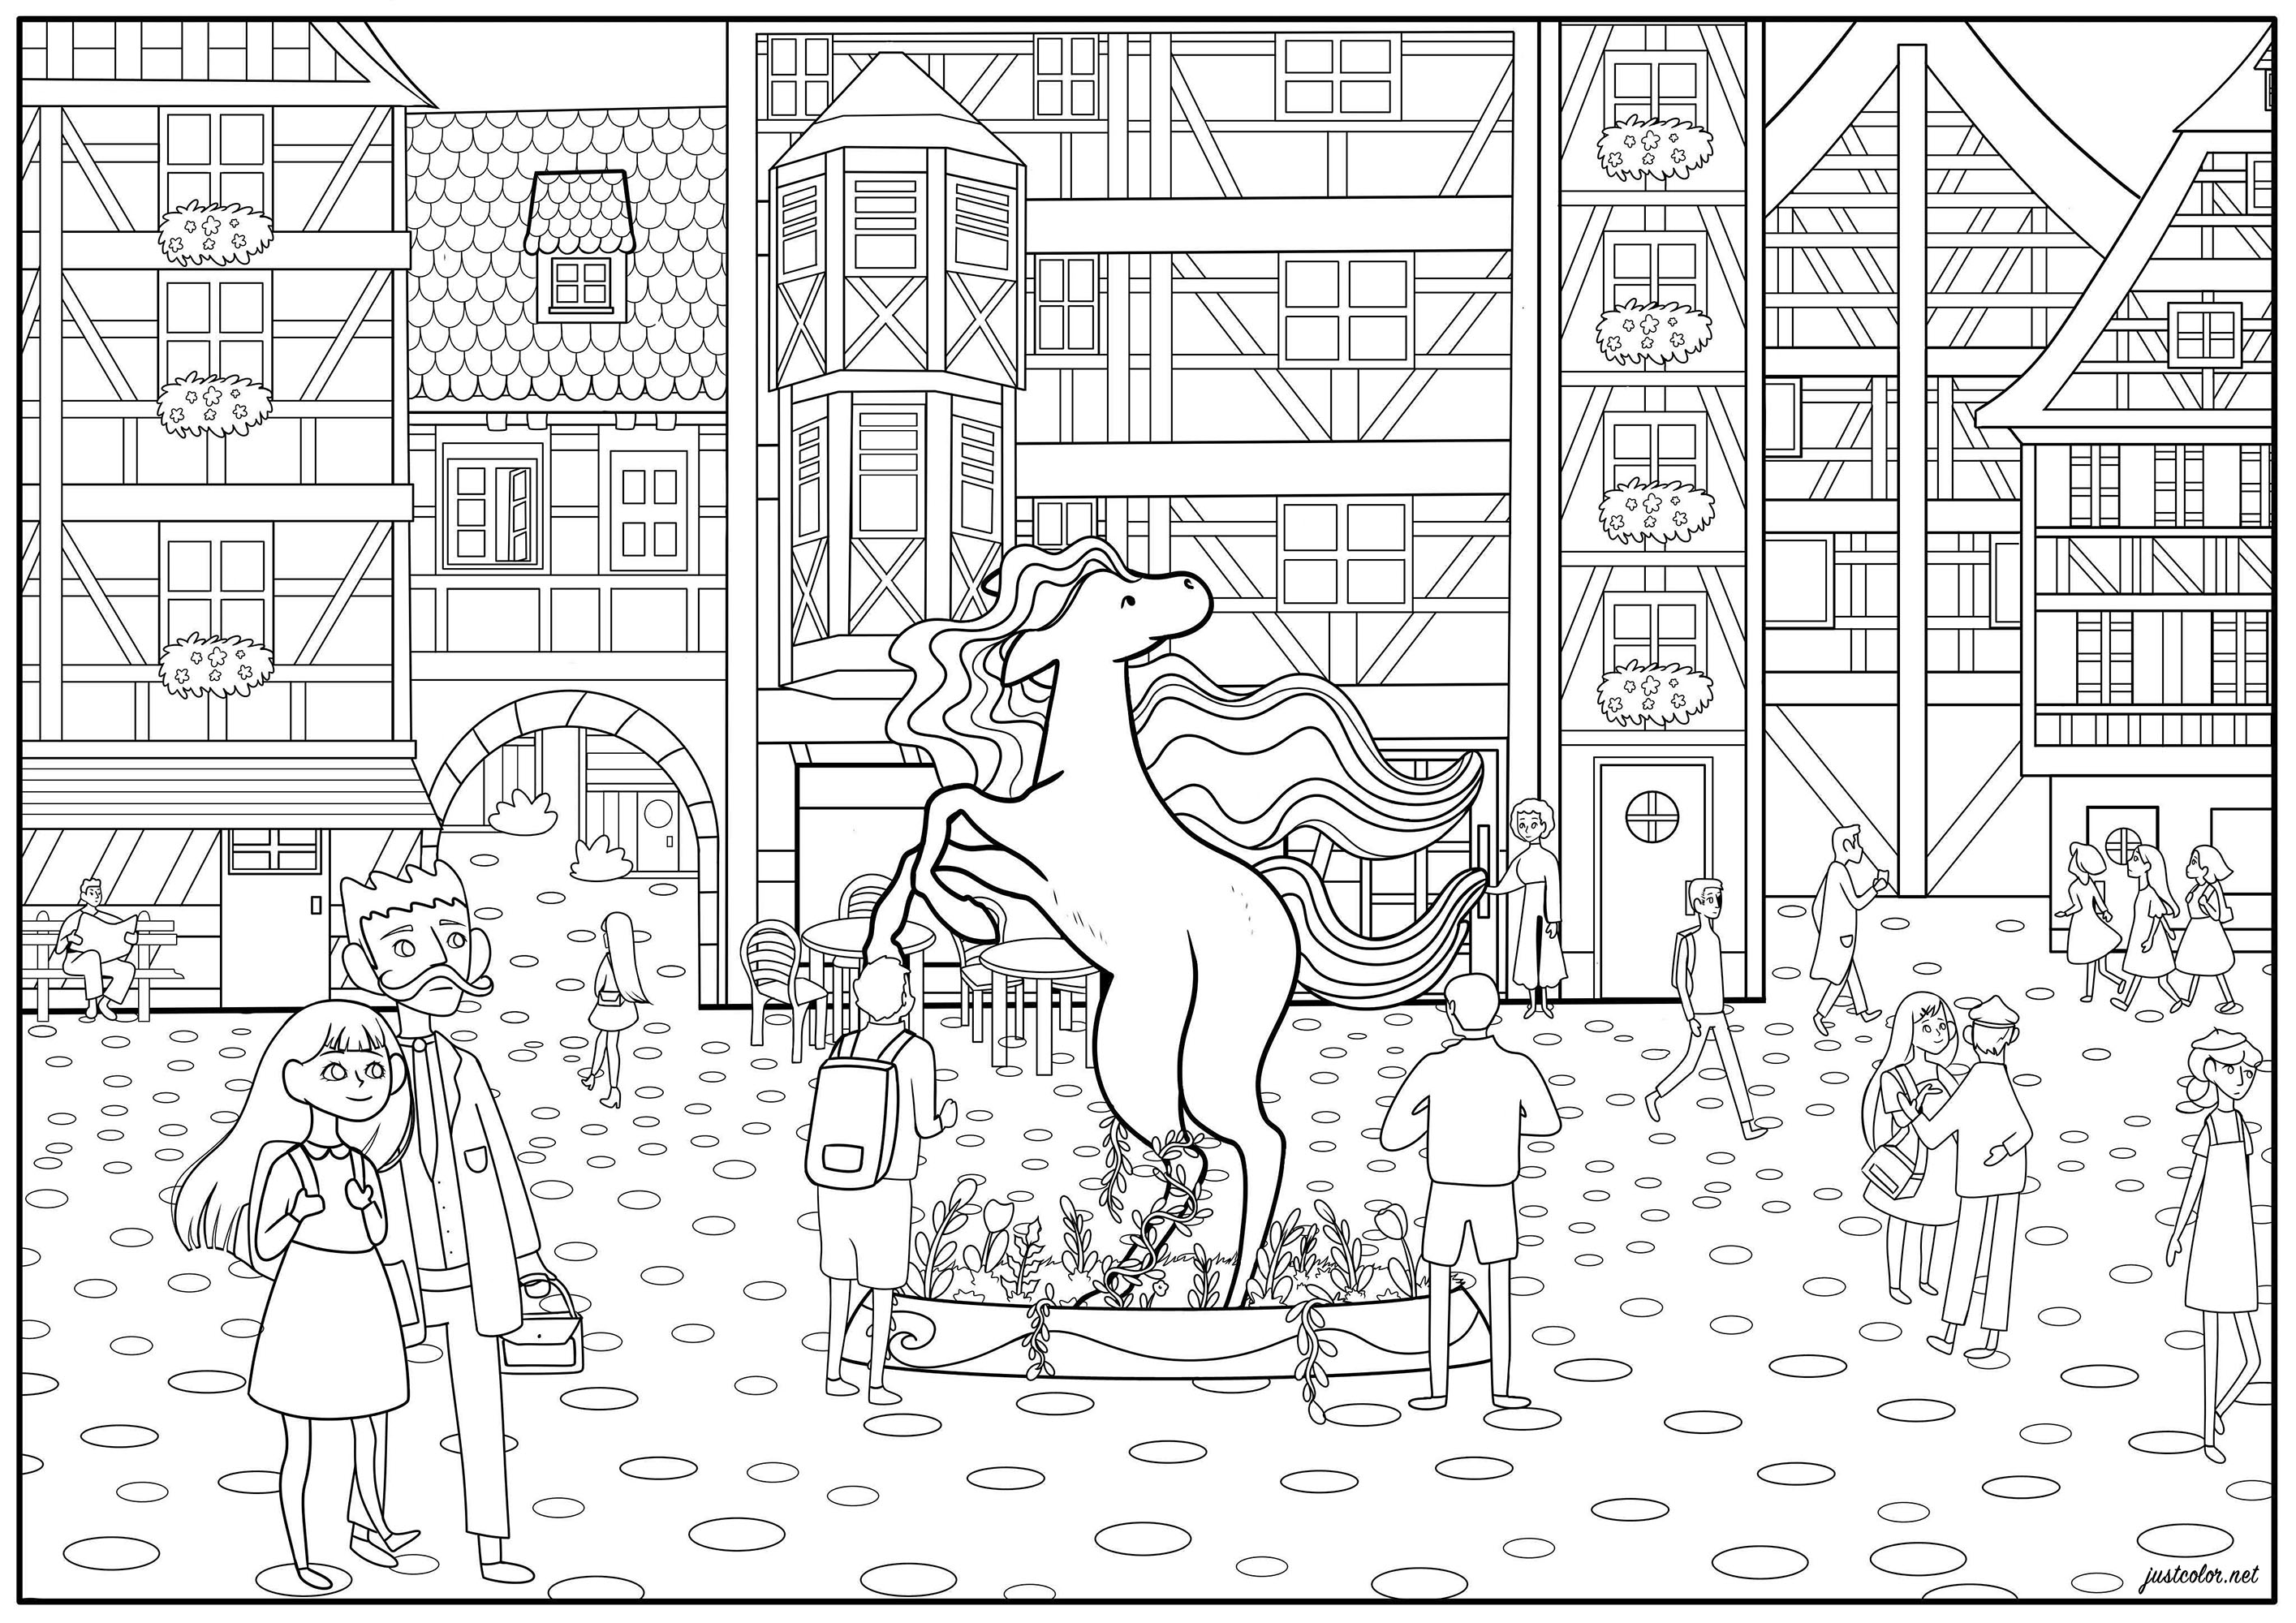 Coloring page of a sunny afternoon in a downtown with timbered houses, and an unicorn statue